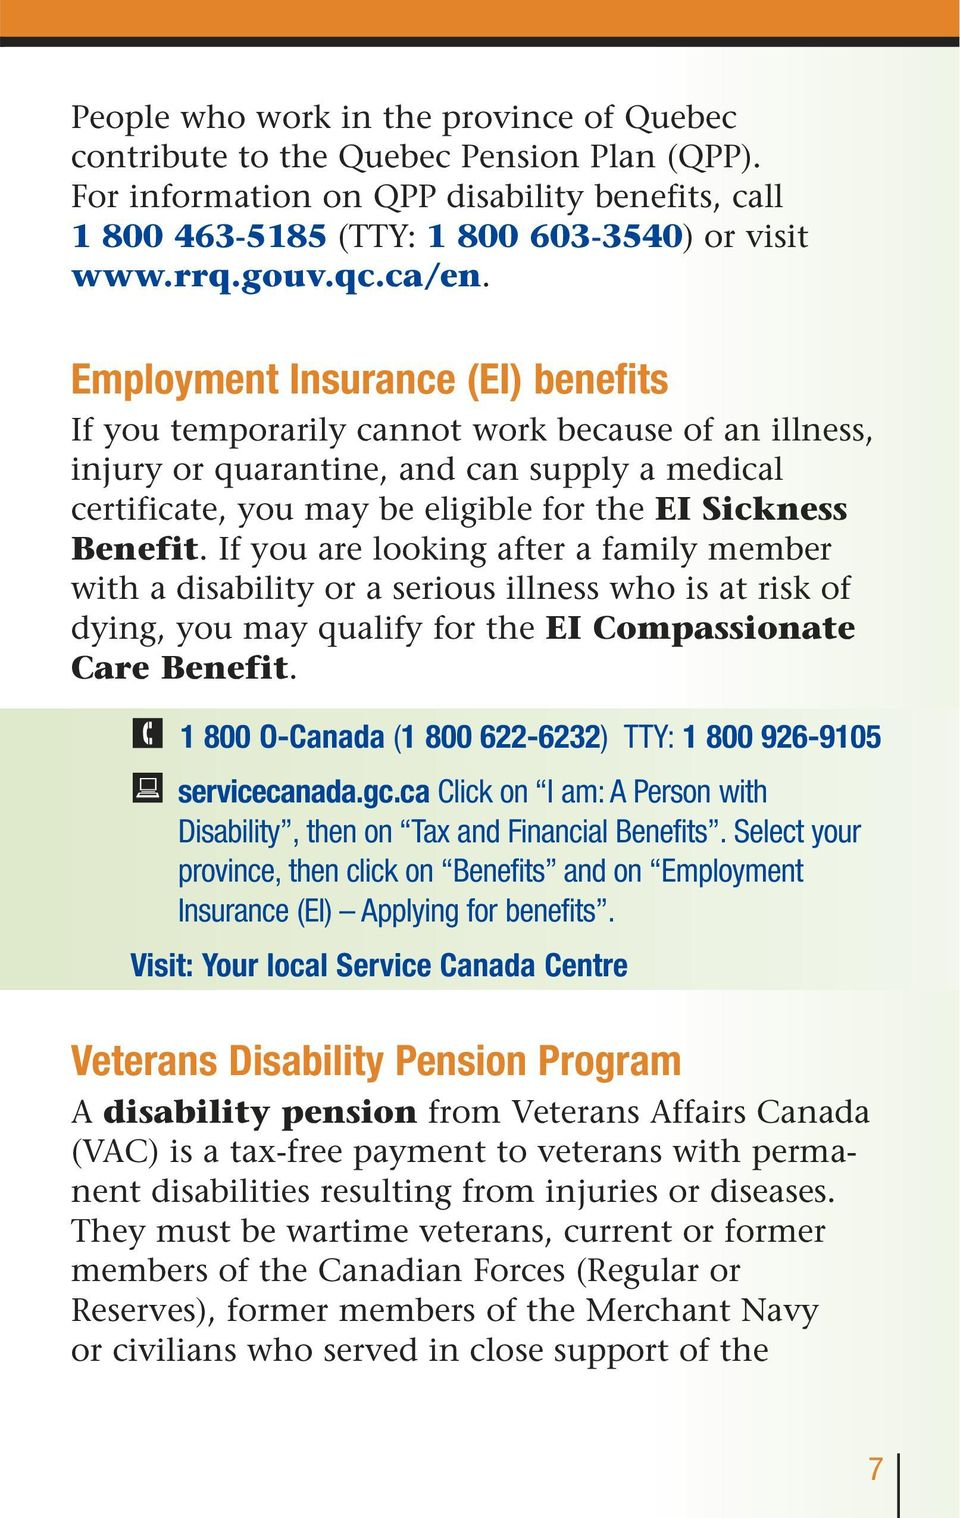 Employment Insurance (EI) benefits If you temporarily cannot work because of an illness, injury or quarantine, and can supply a medical certificate, you may be eligible for the EI Sickness Benefit.